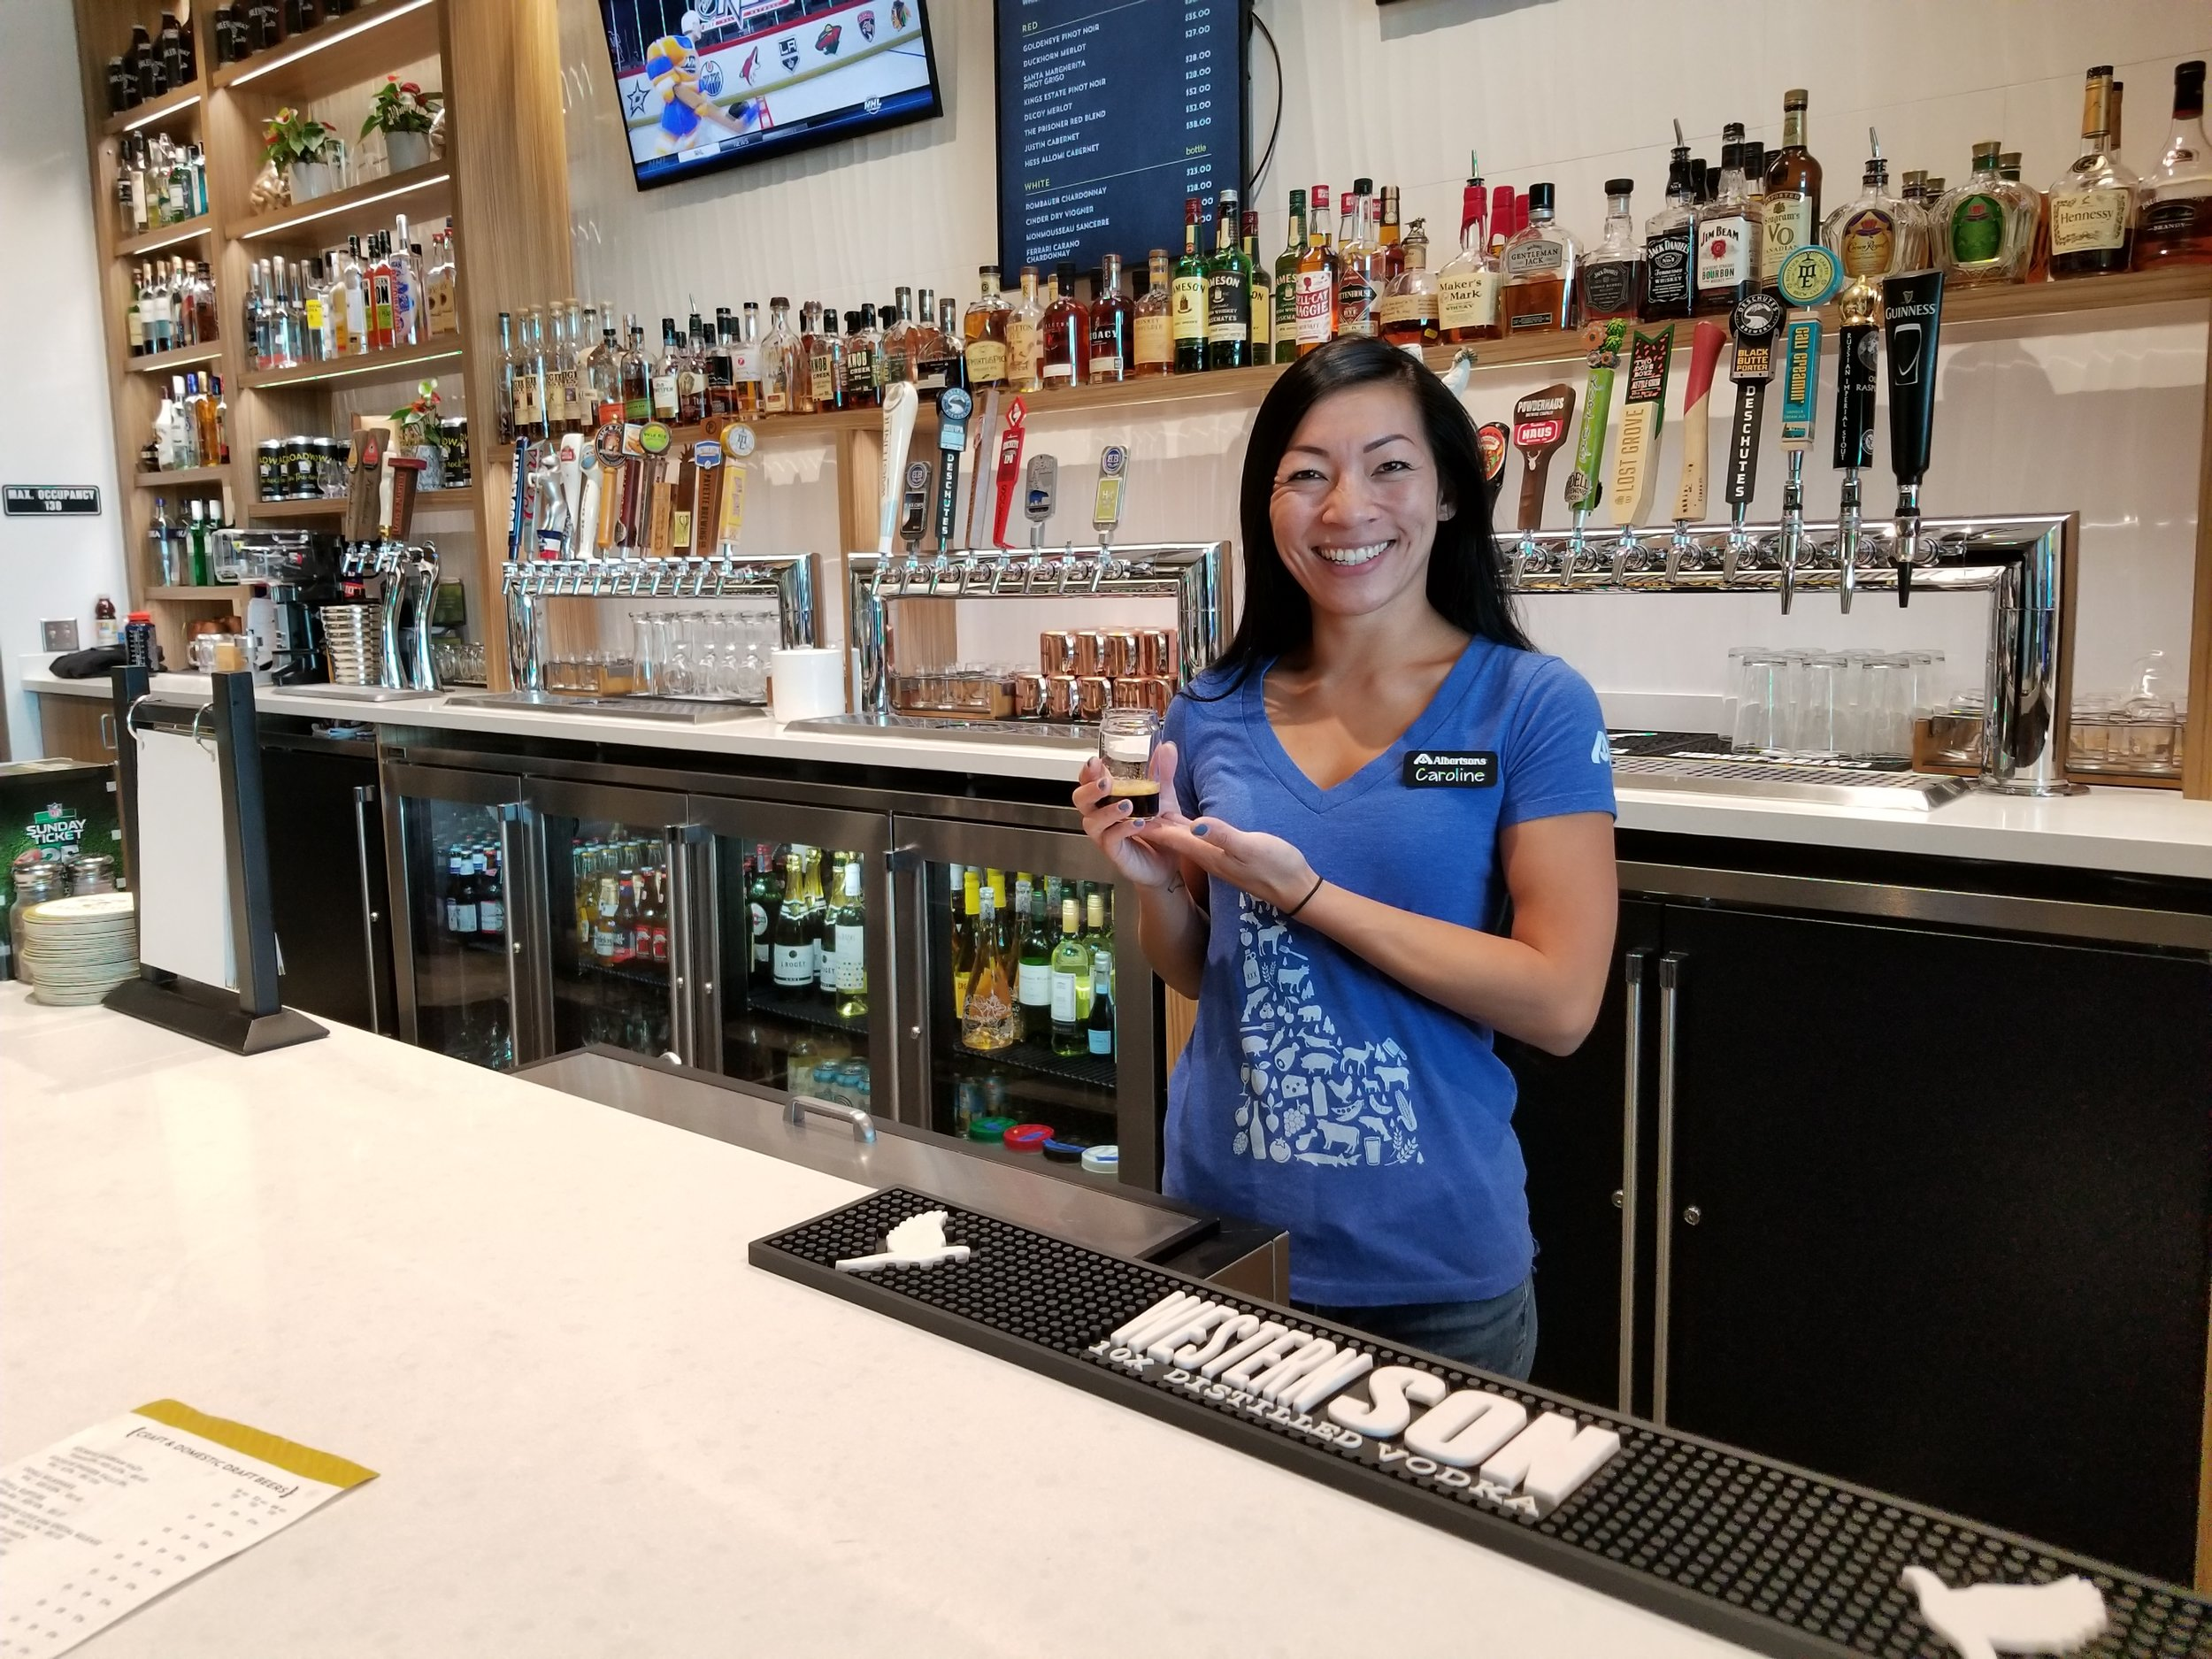 Bartender Carolyn Tang serves a beer sample with a smile at Broadway on the Rocks in Albertson's, Boise.